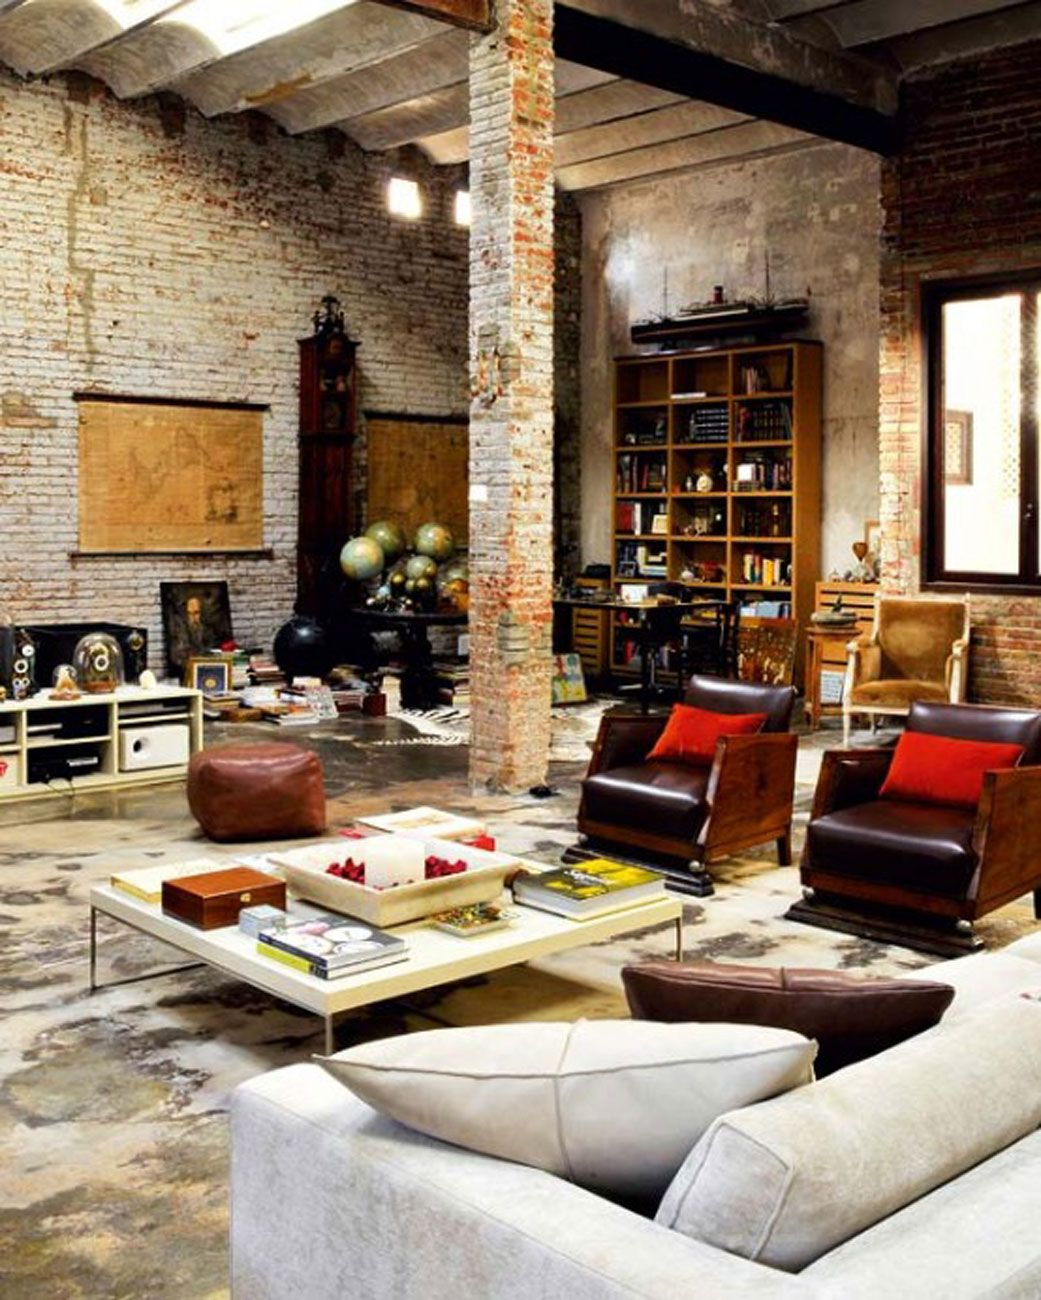 Modern loft living room - Modern Loft With Industrial Bricks Living Room Could Definately Be Comfortable In A Loft